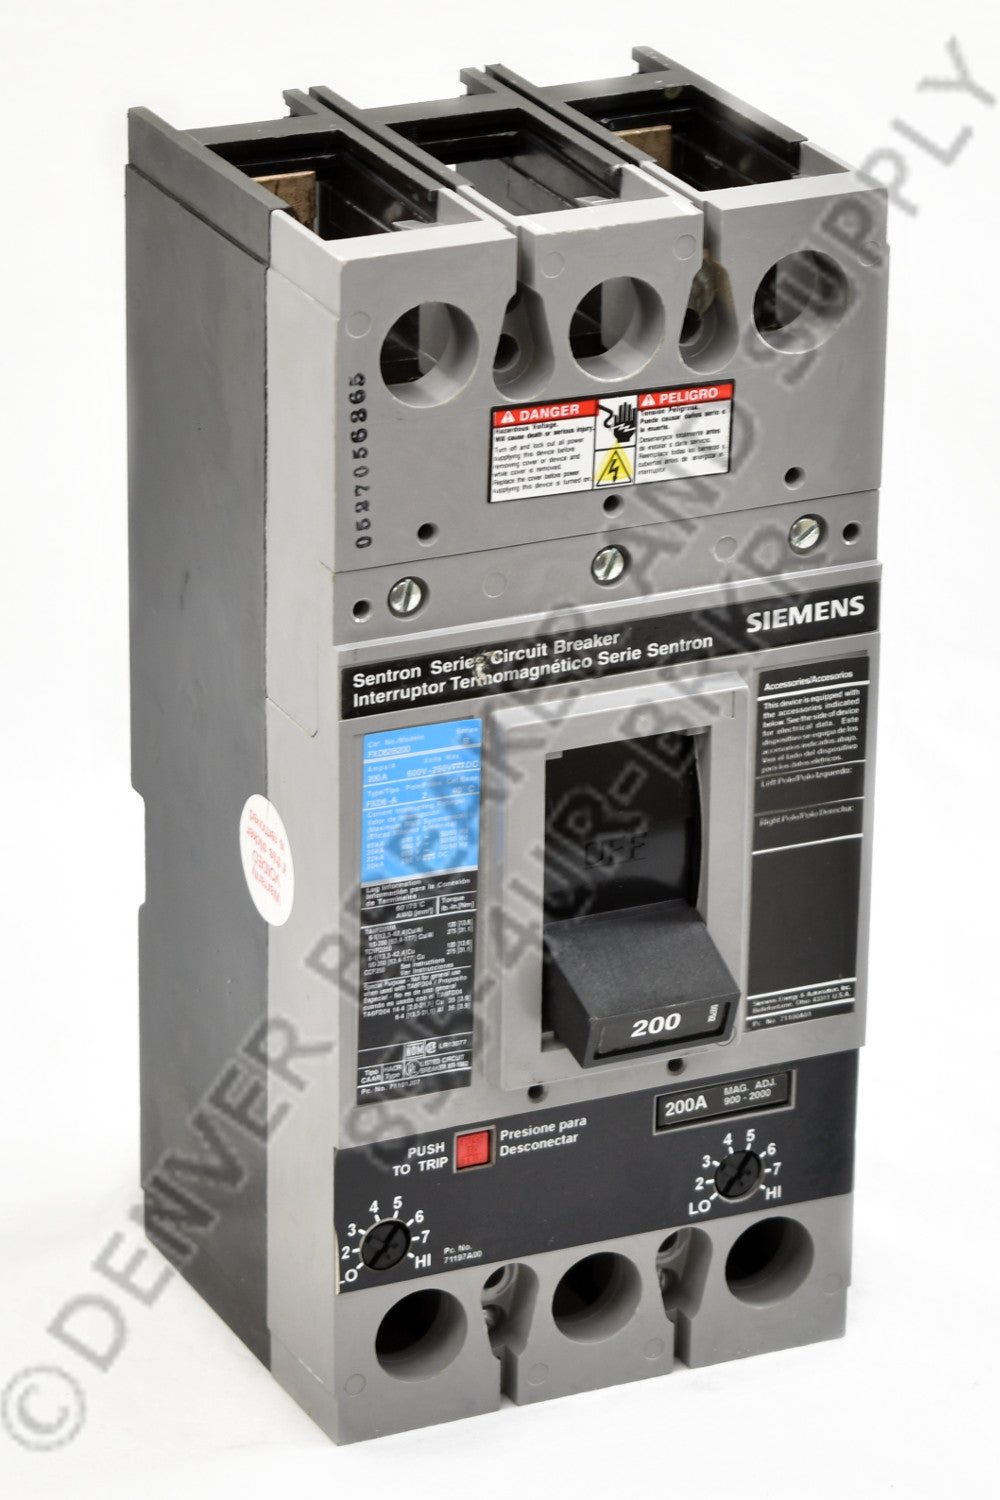 Siemens FD62B125 Circuit Breakers